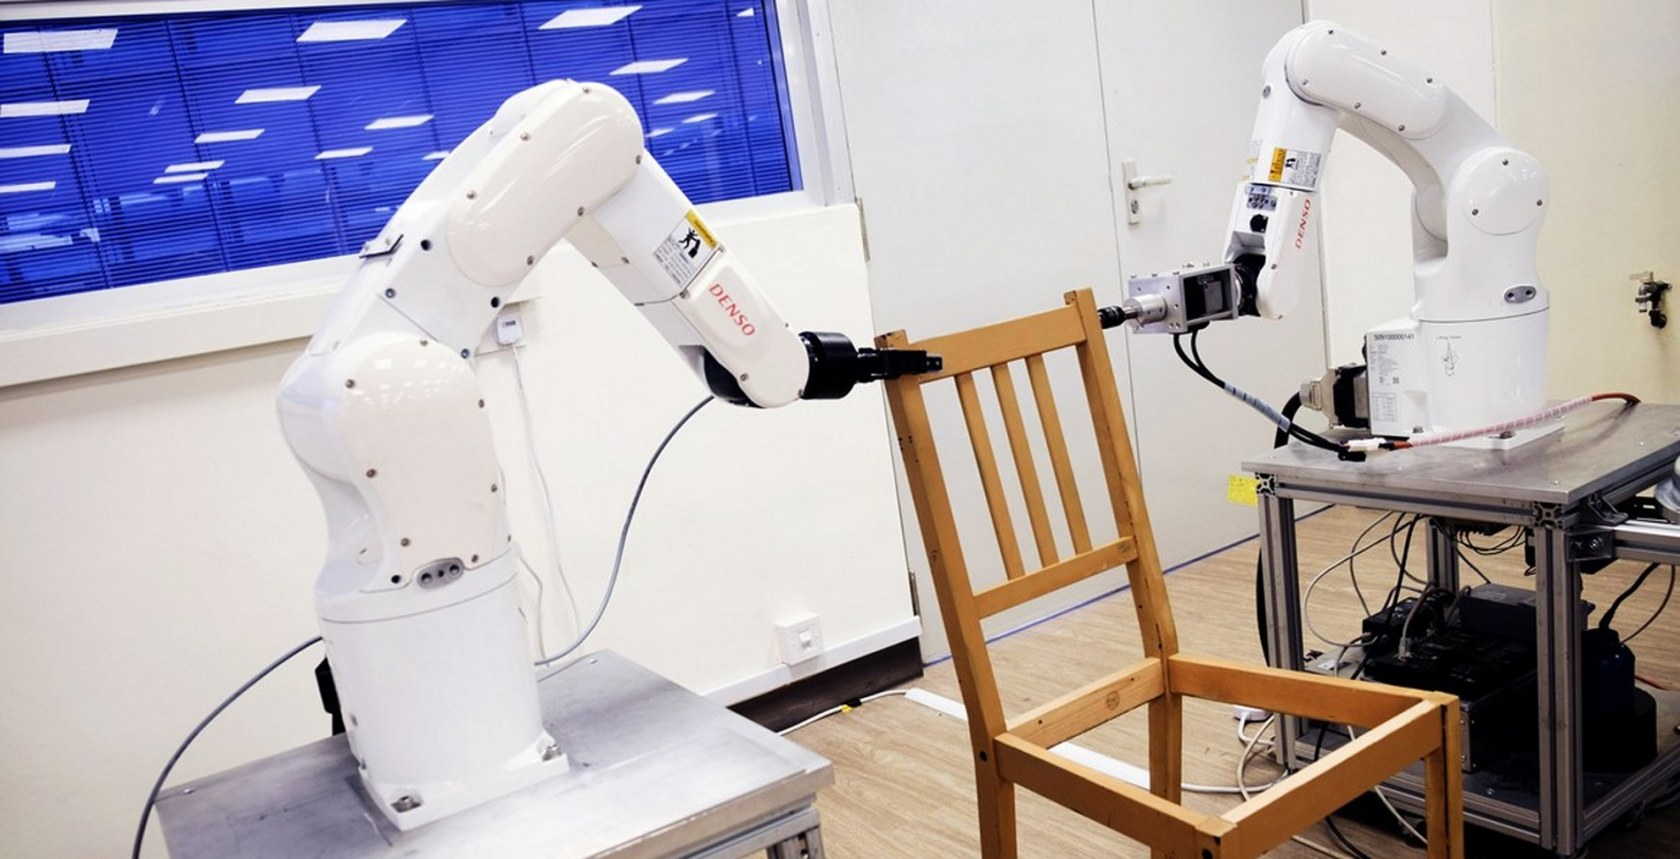 Robot assembles Ikea furniture without losing its temper or any pieces